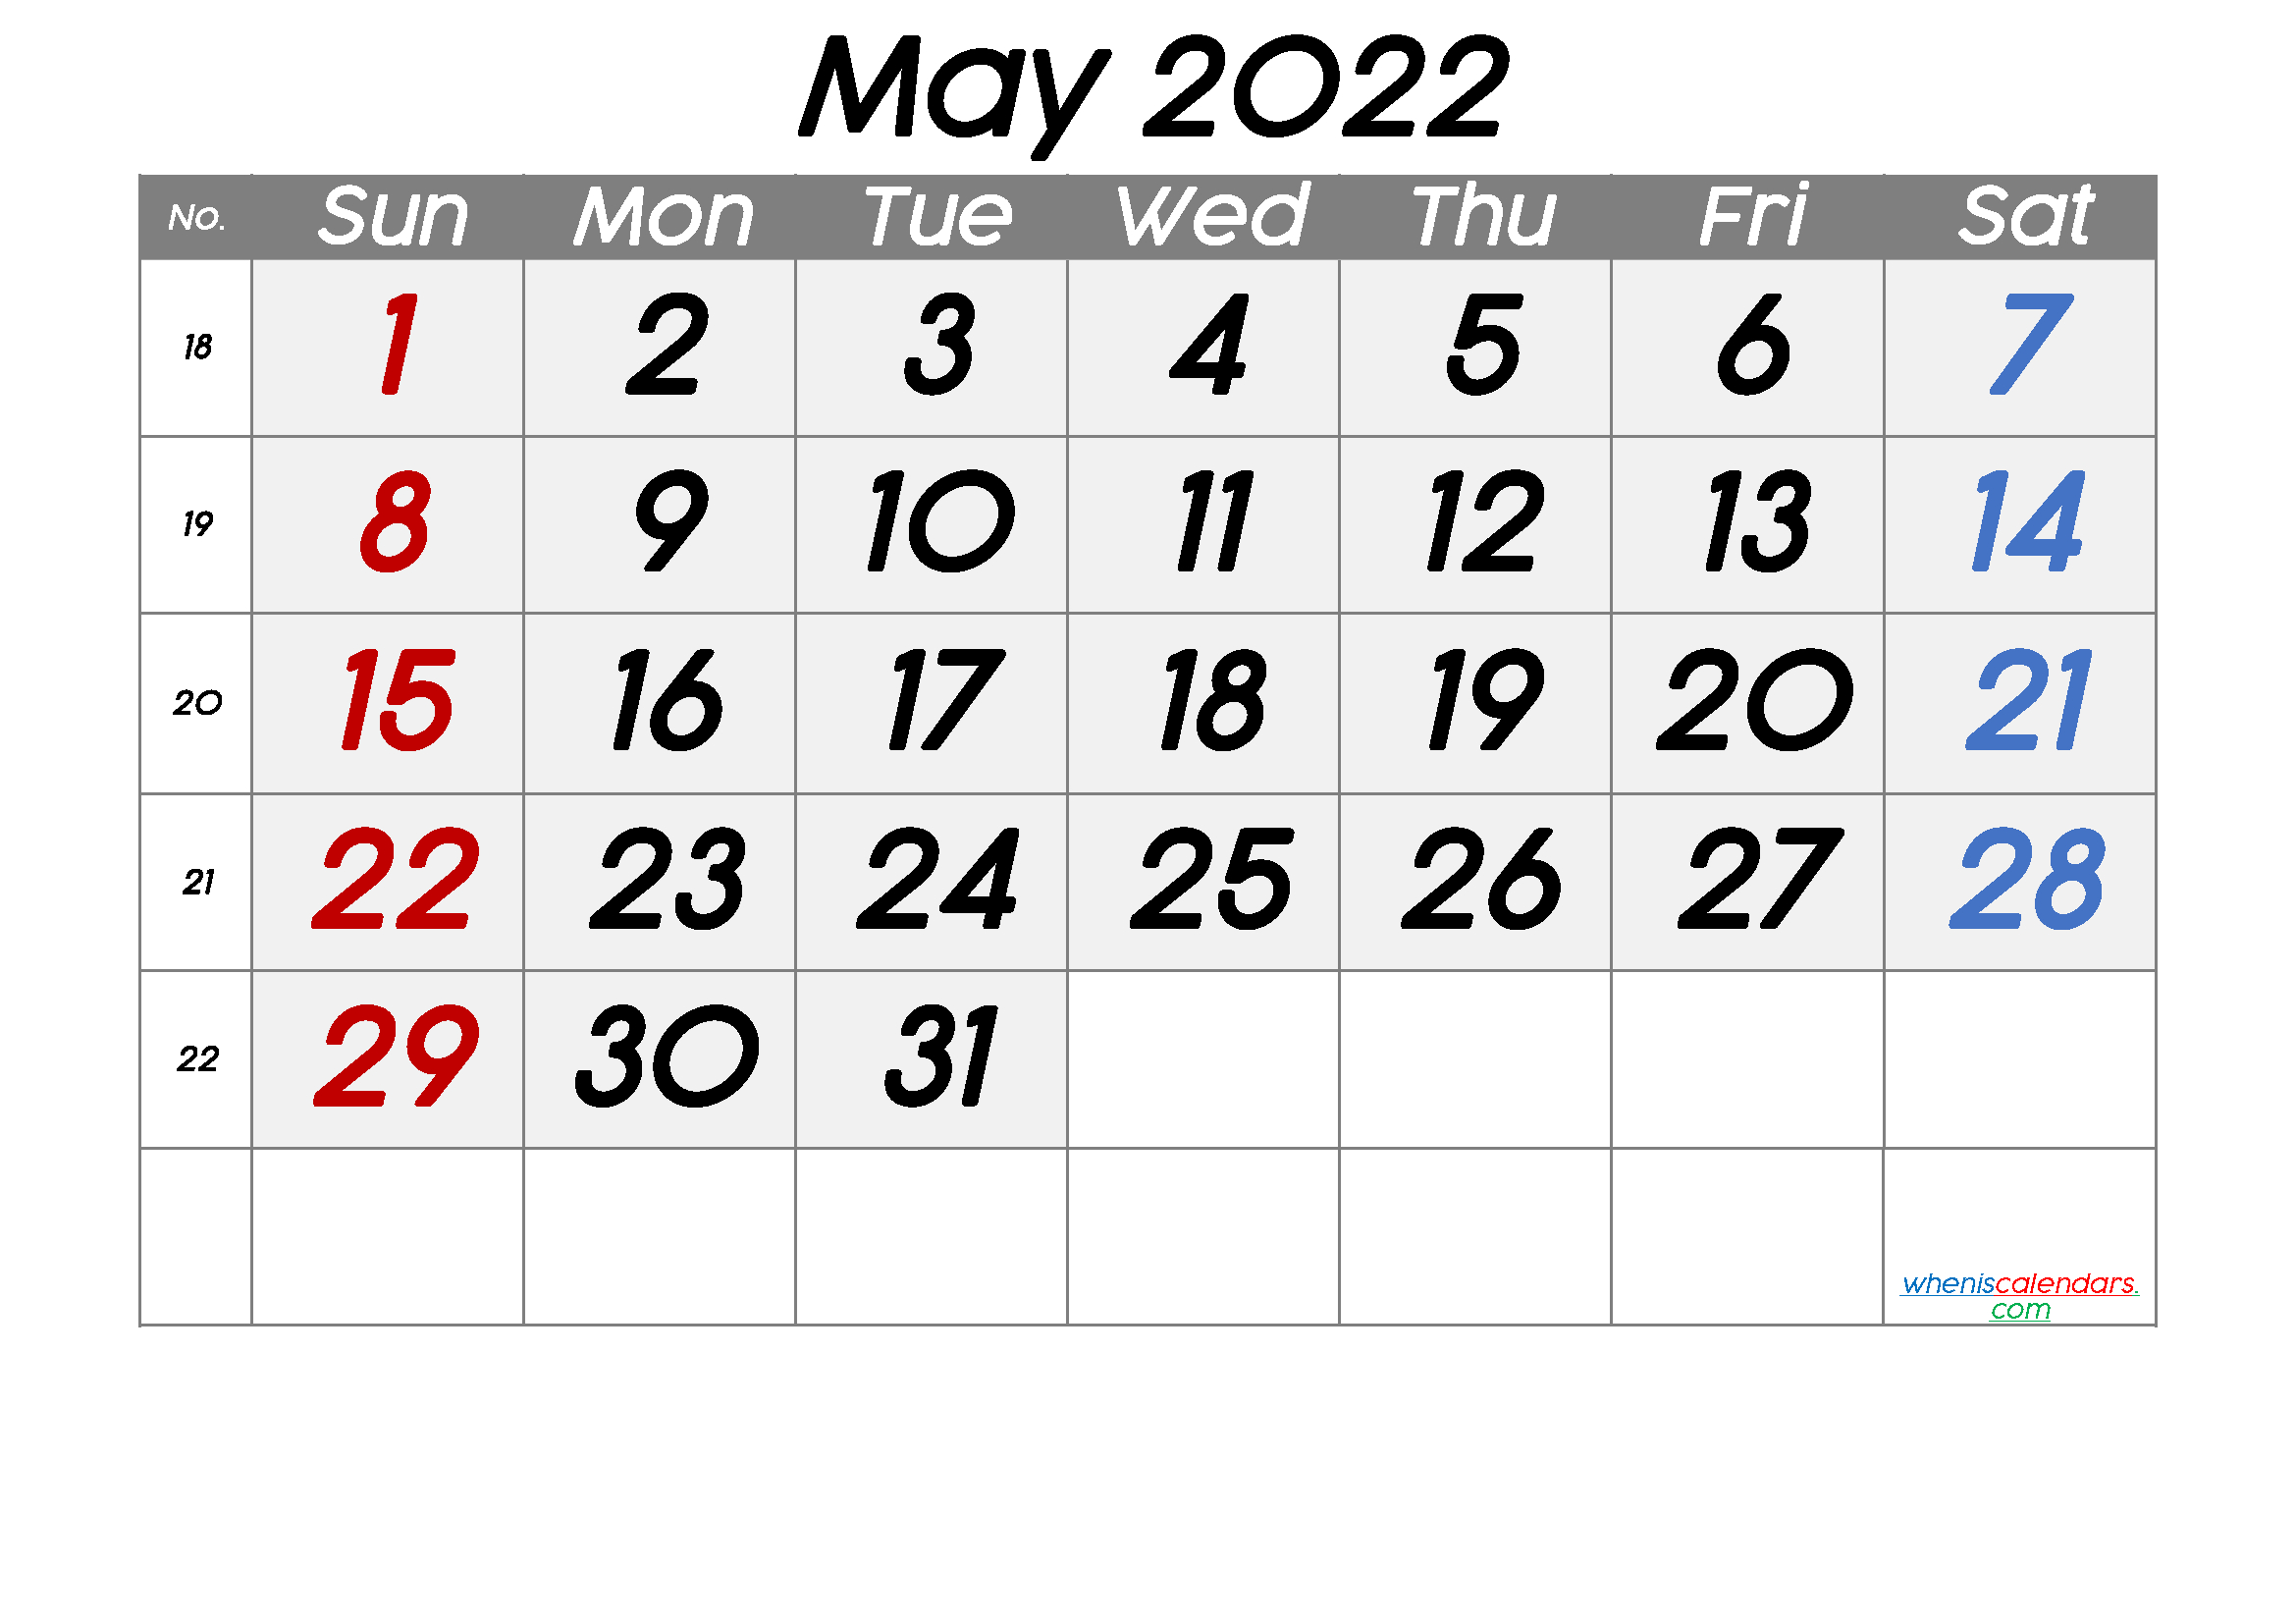 Printable Calendar 2022 May - Free Printable 2021 Monthly within Printable Day Planner 2022